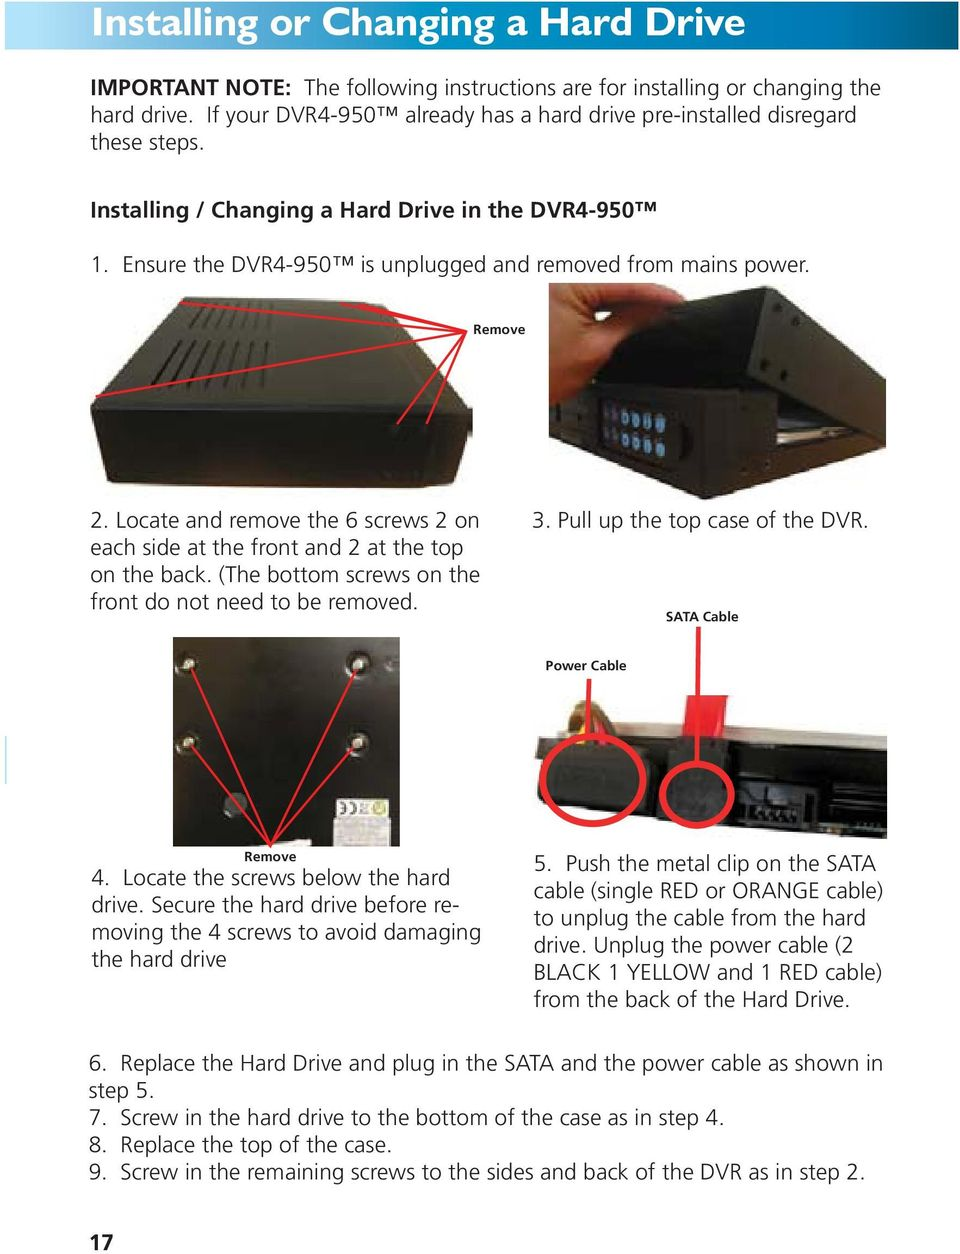 Remove 2. Locate and remove the 6 screws 2 on each side at the front and 2 at the top on the back. (The bottom screws on the front do not need to be removed. 3. Pull up the top case of the DVR.